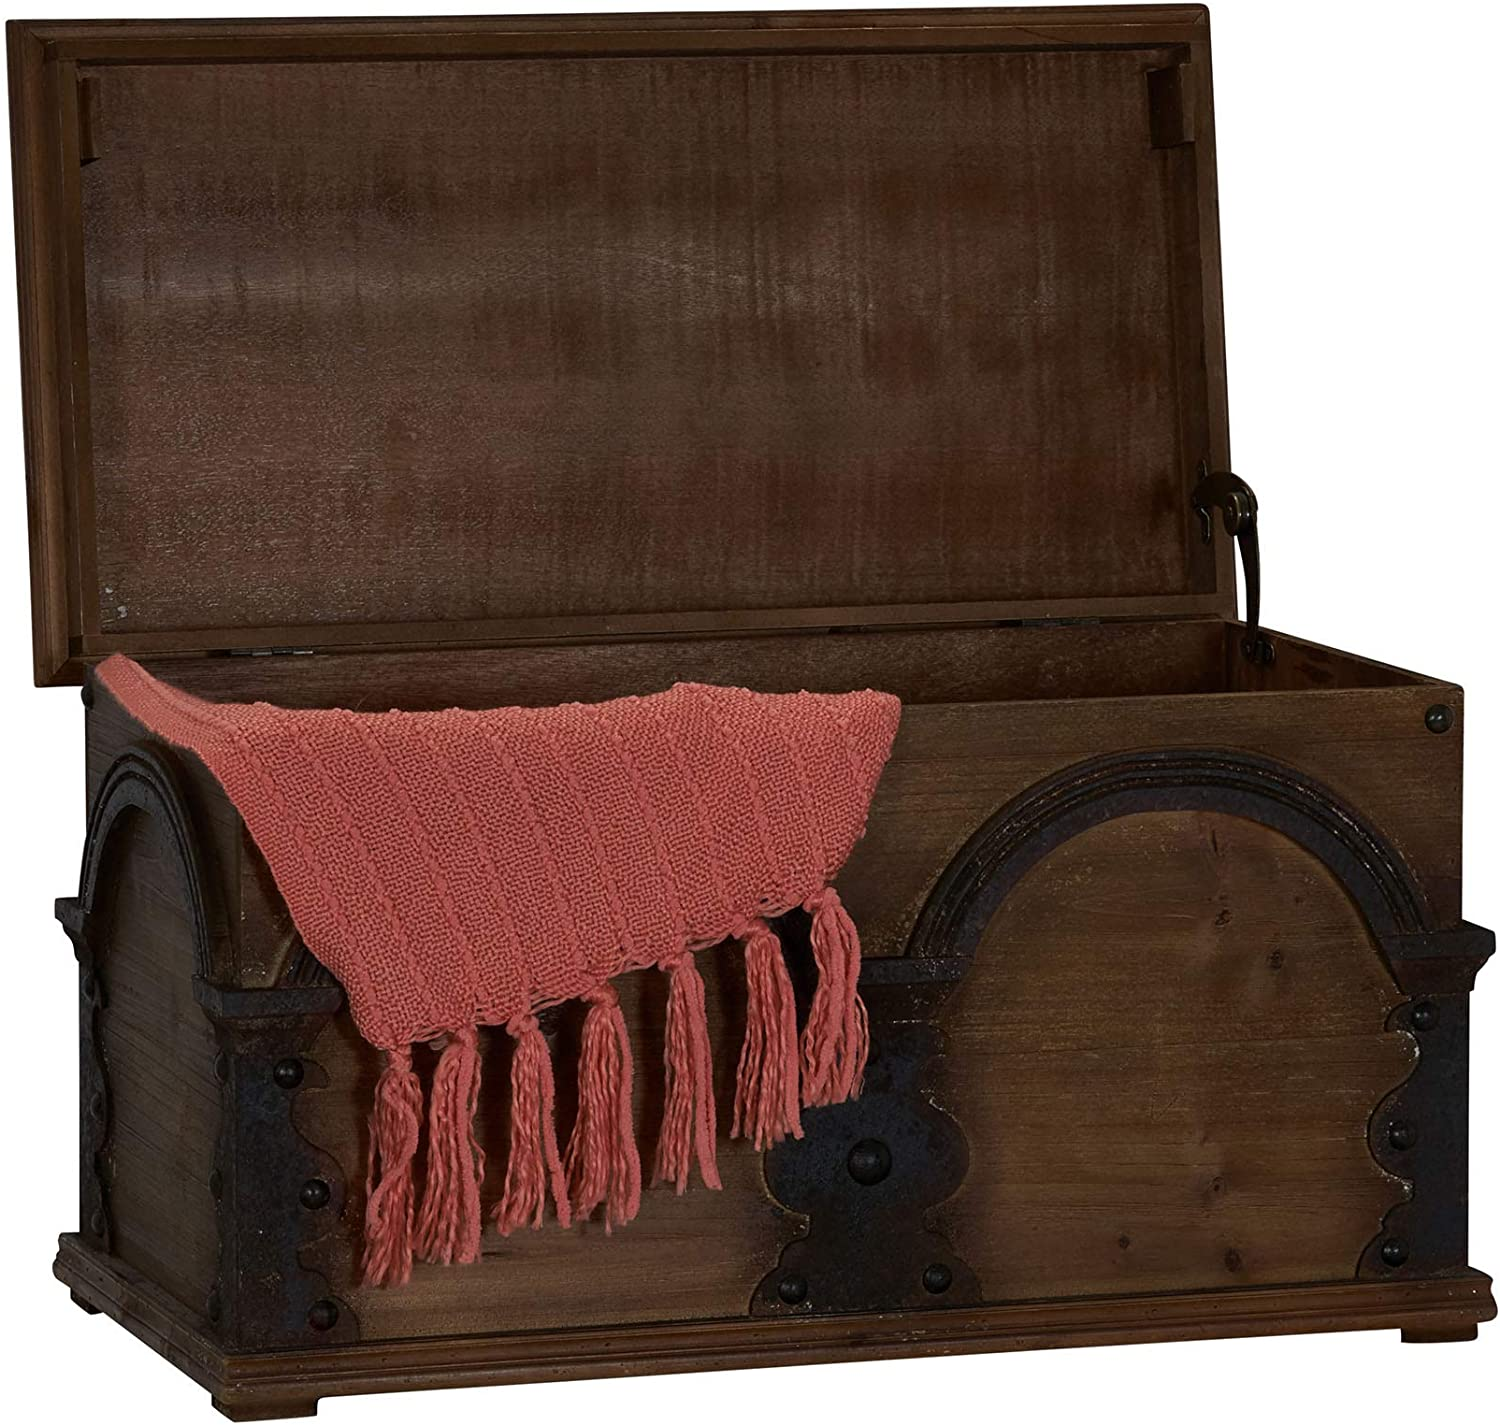 Household Selling and selling Essentials Wooden Arch Trunk Chest Storage Large Super-cheap Bro